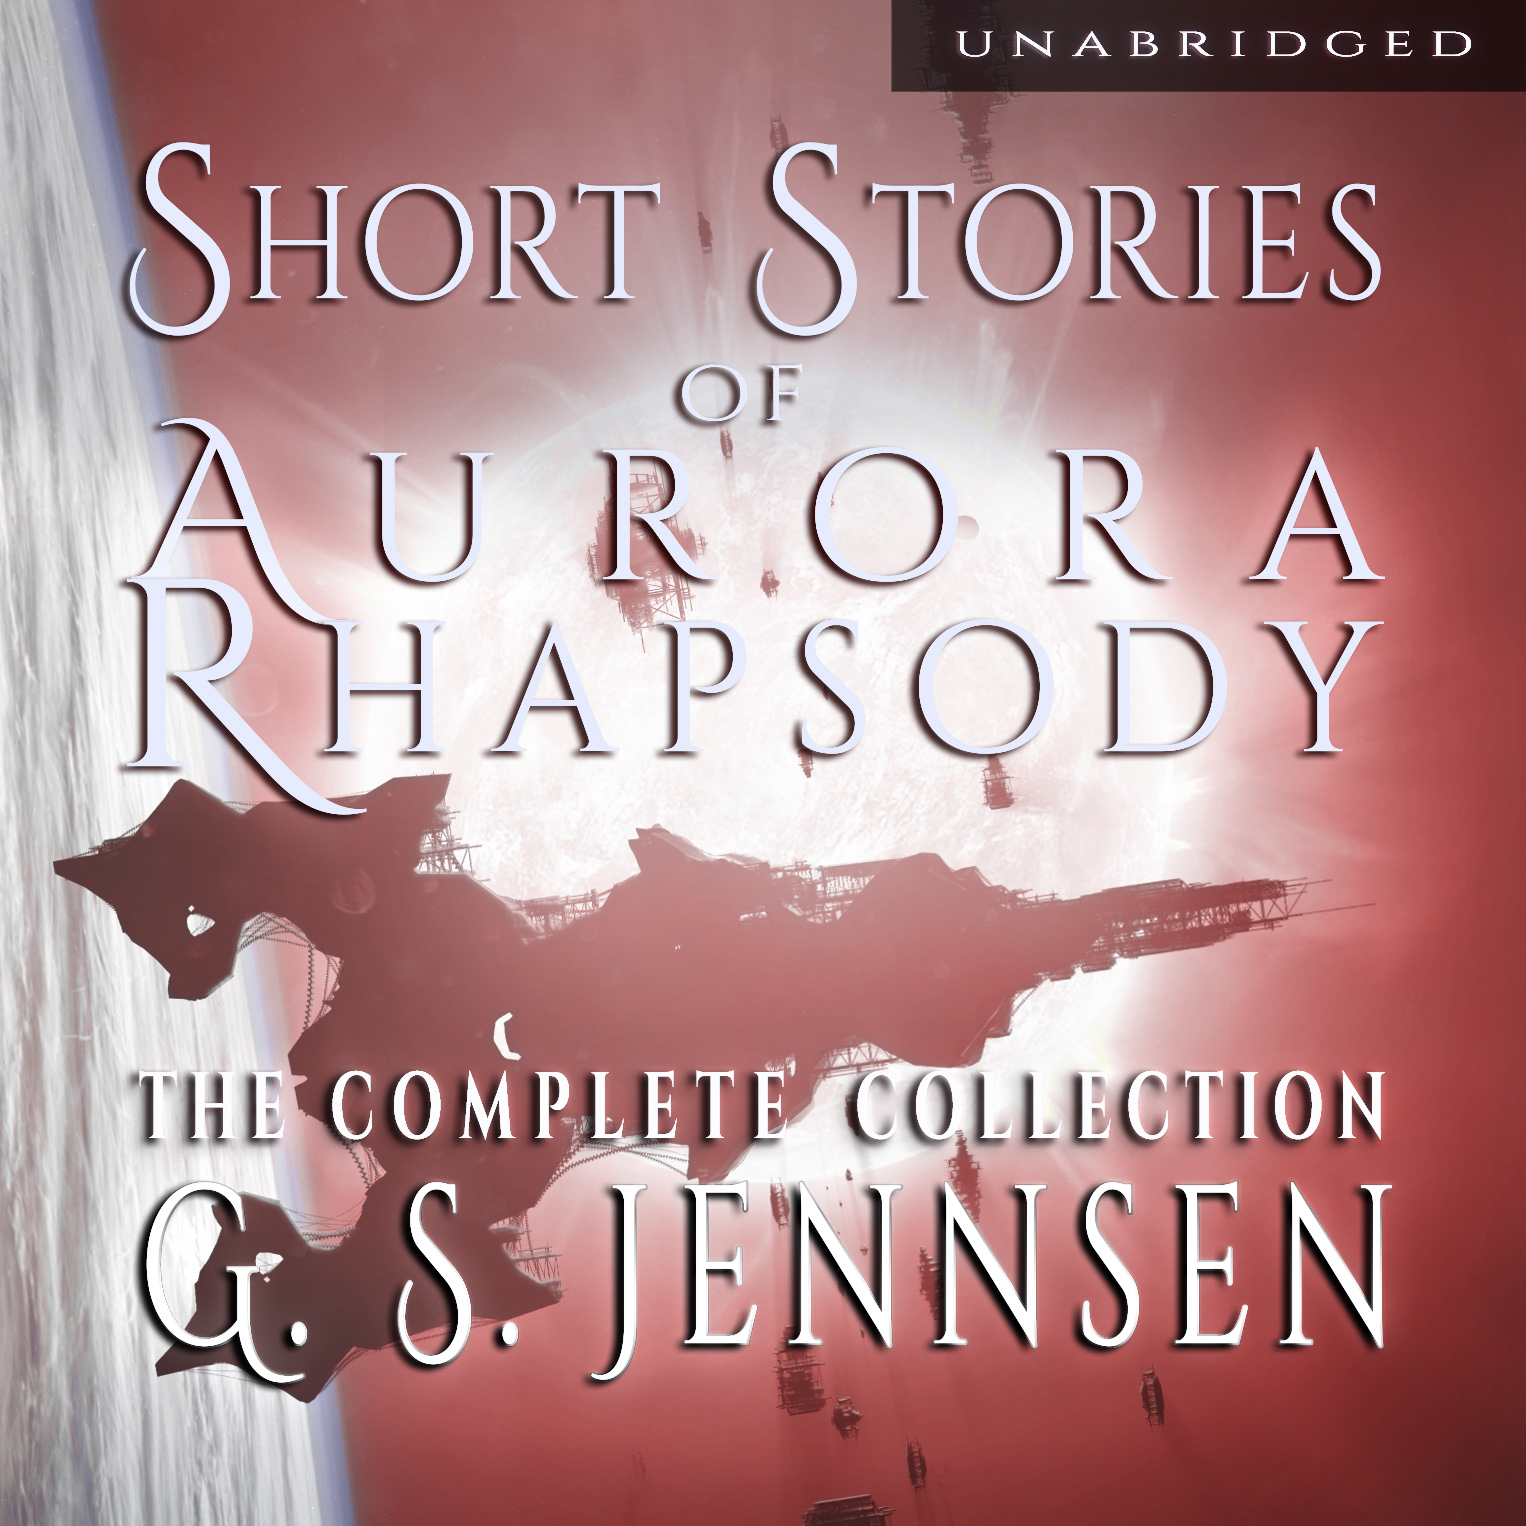 Shorts Collection Audiobook.jpg